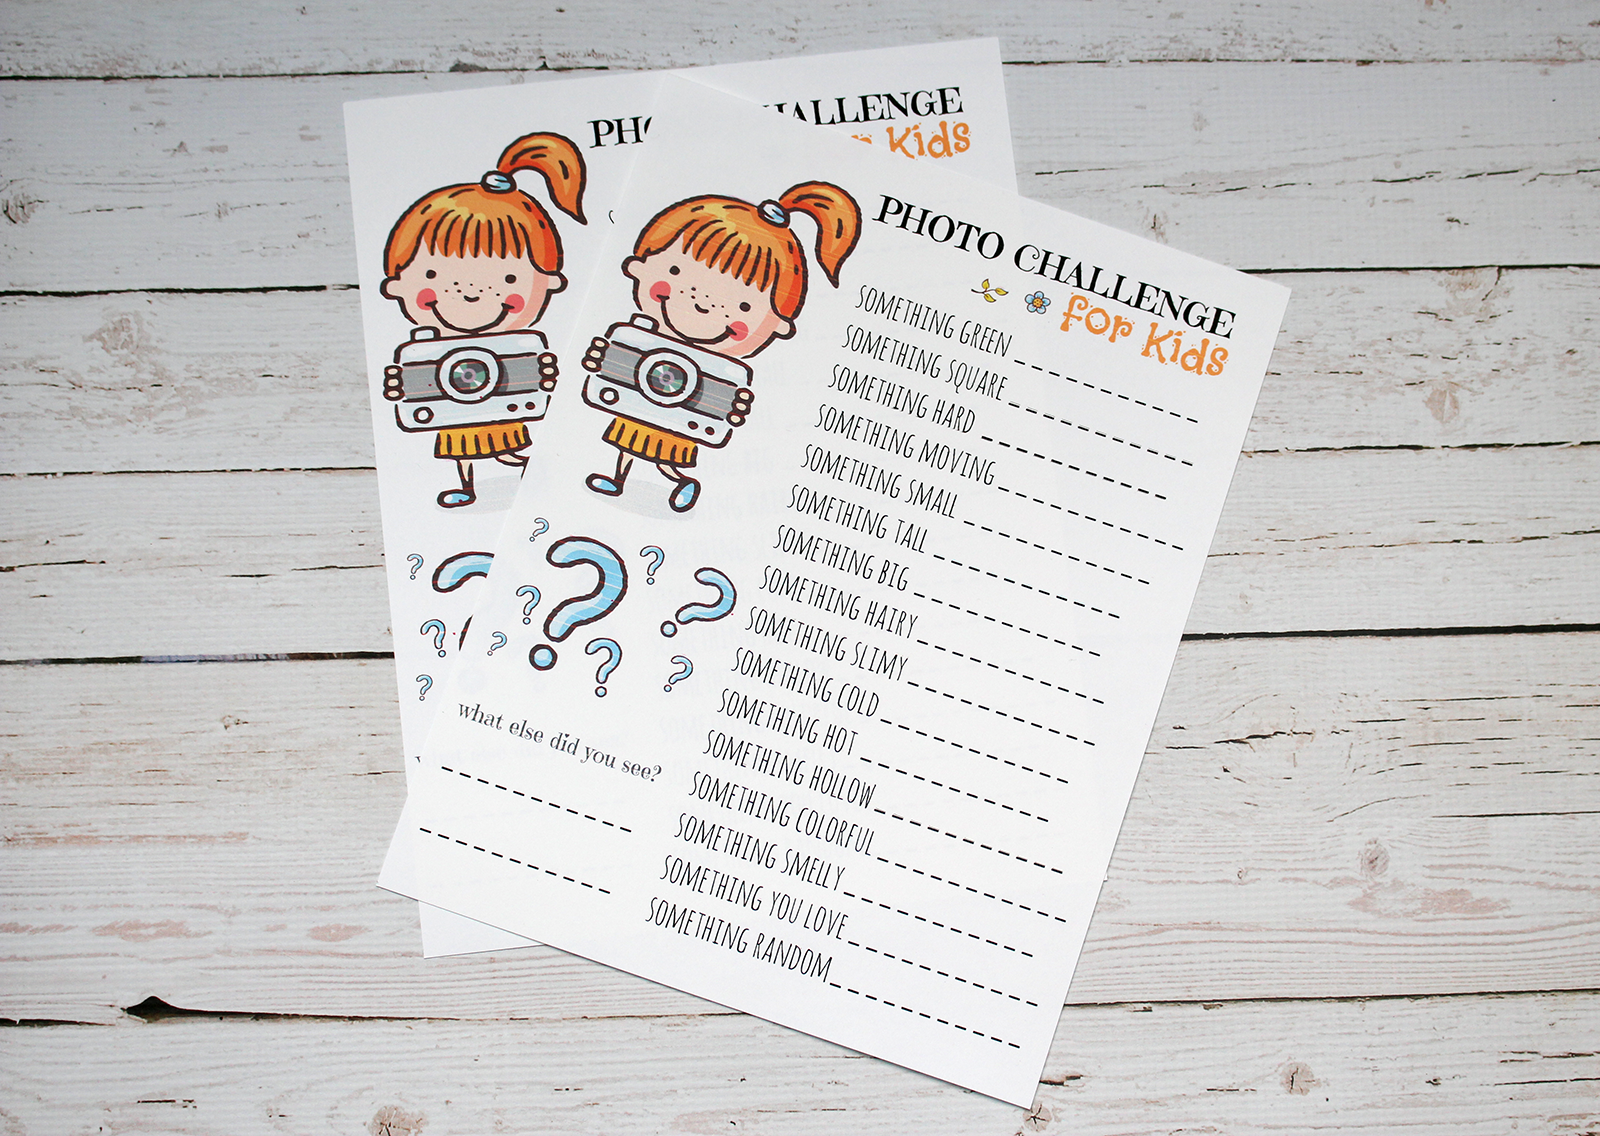 Free Photo Challenge Printable for Kids